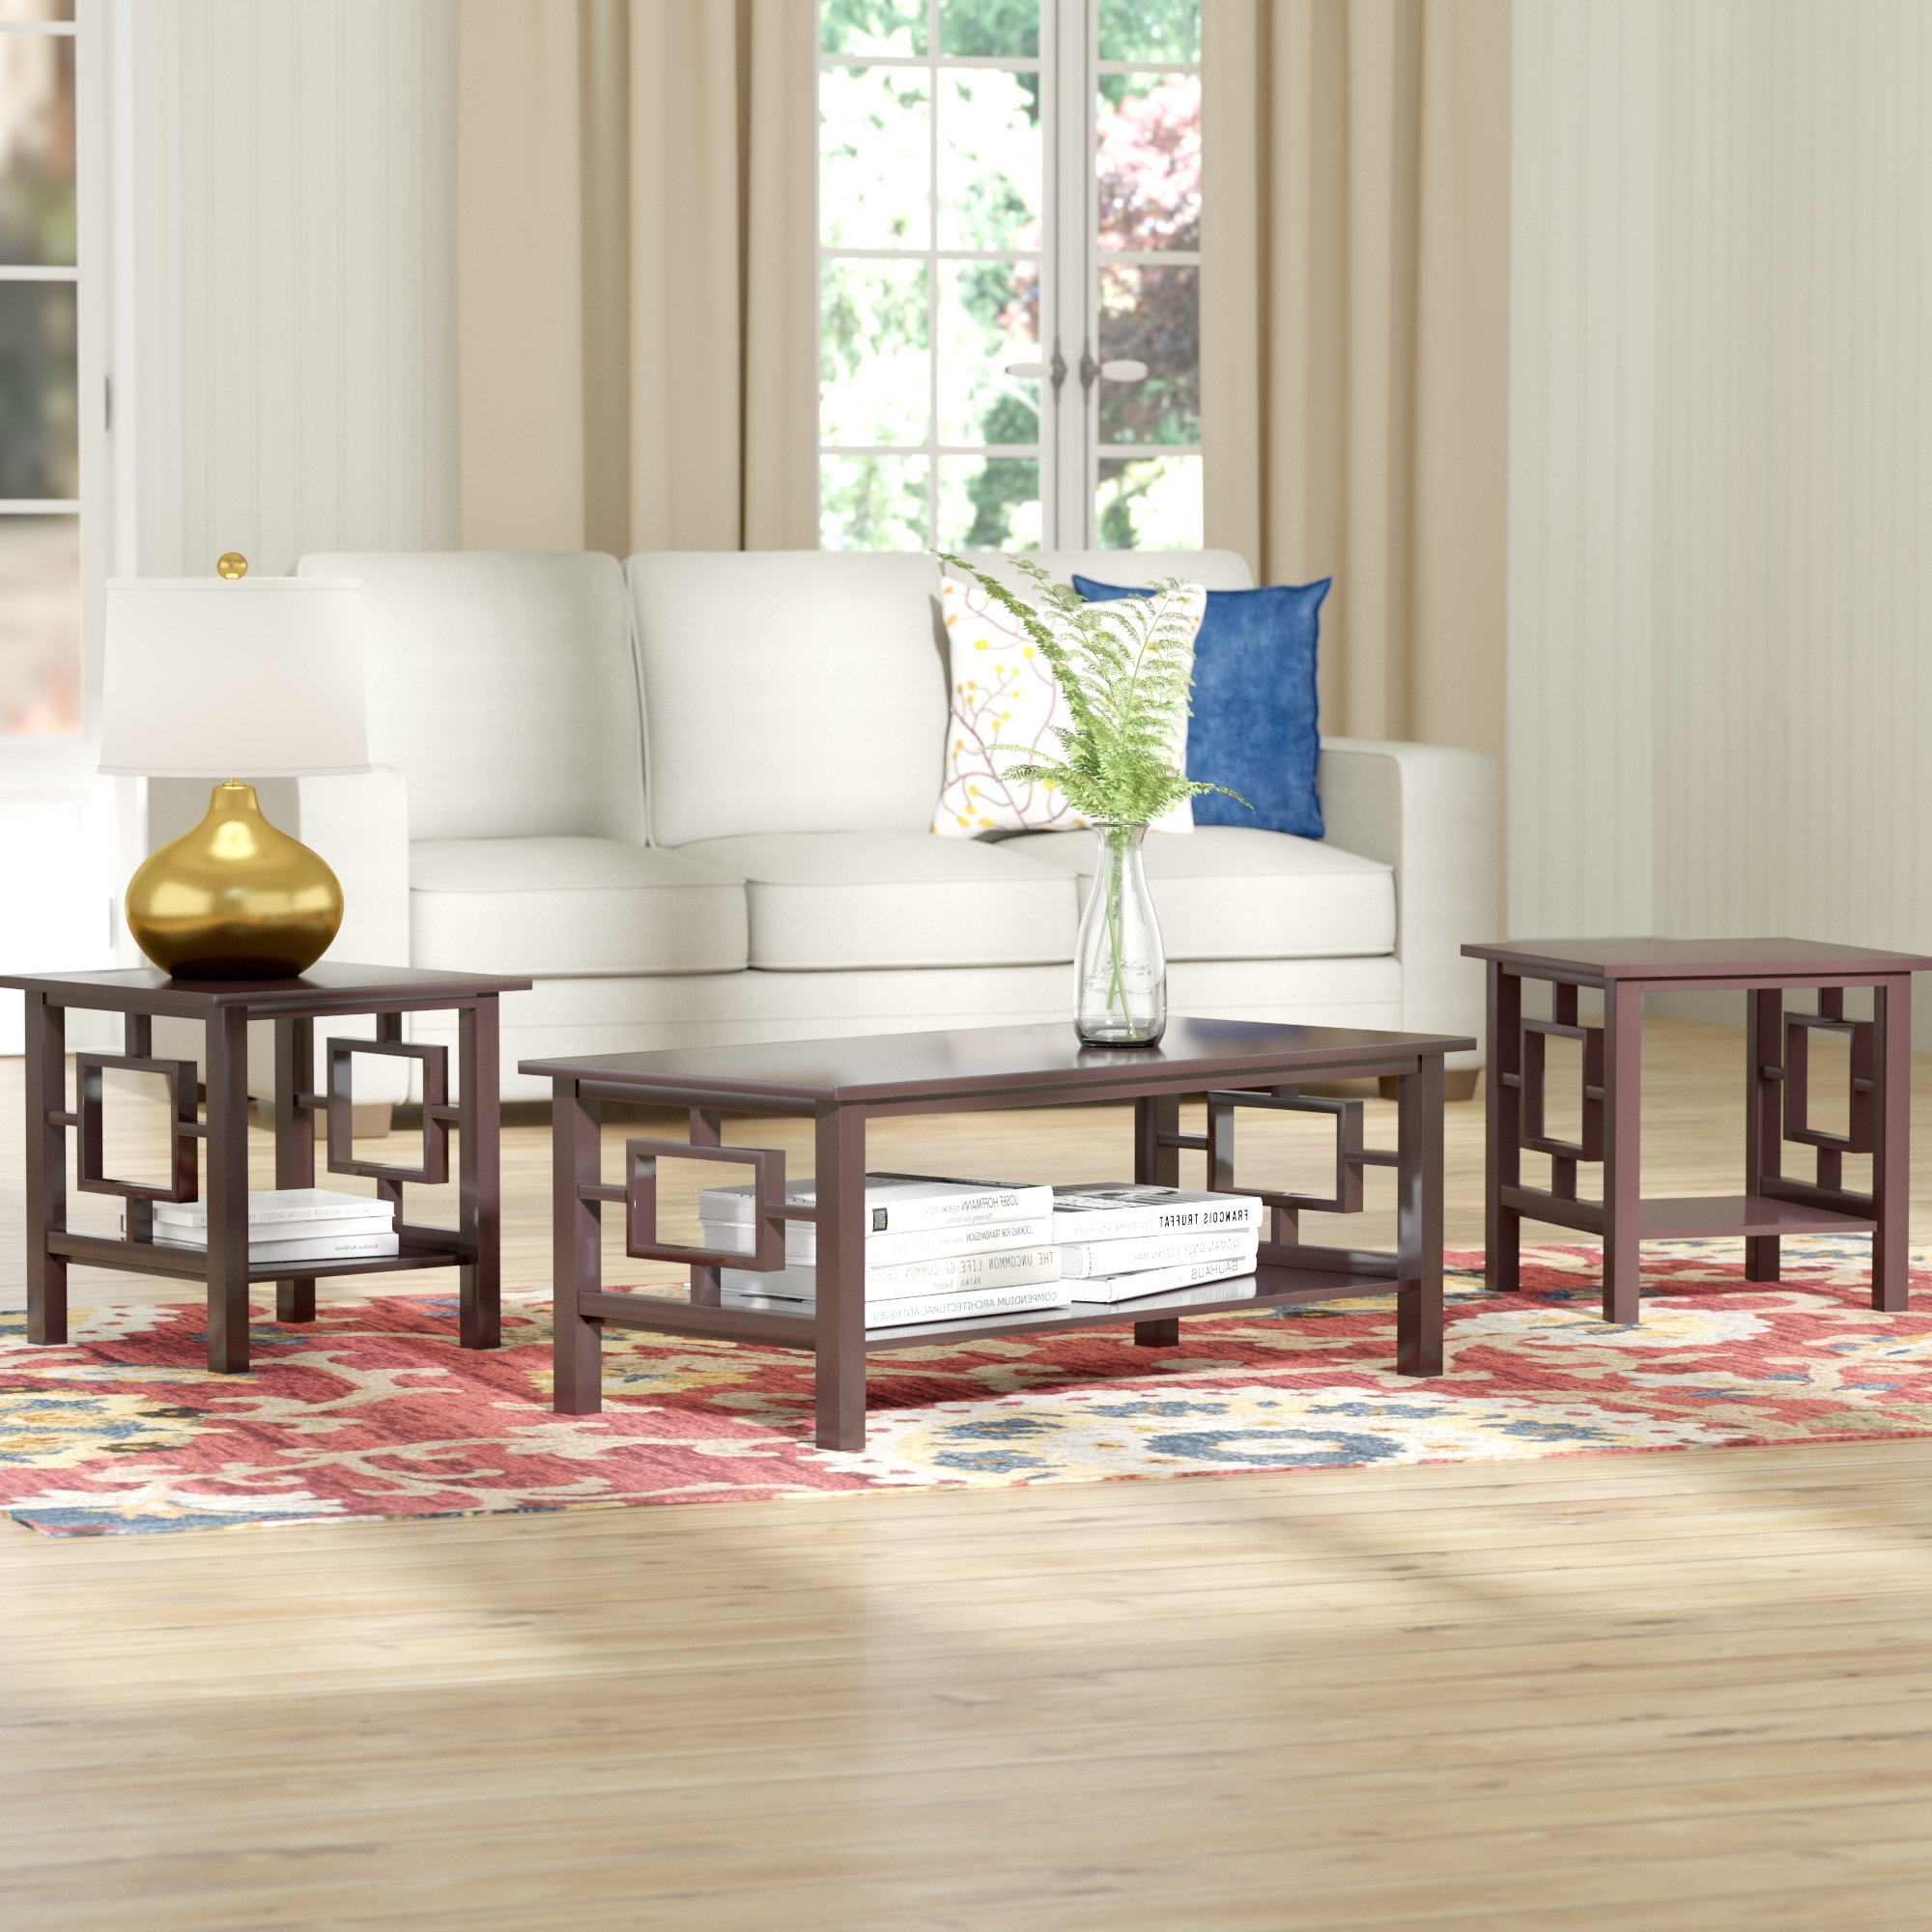 Wayfair In Recent Carissa Cocktail Tables (View 19 of 20)